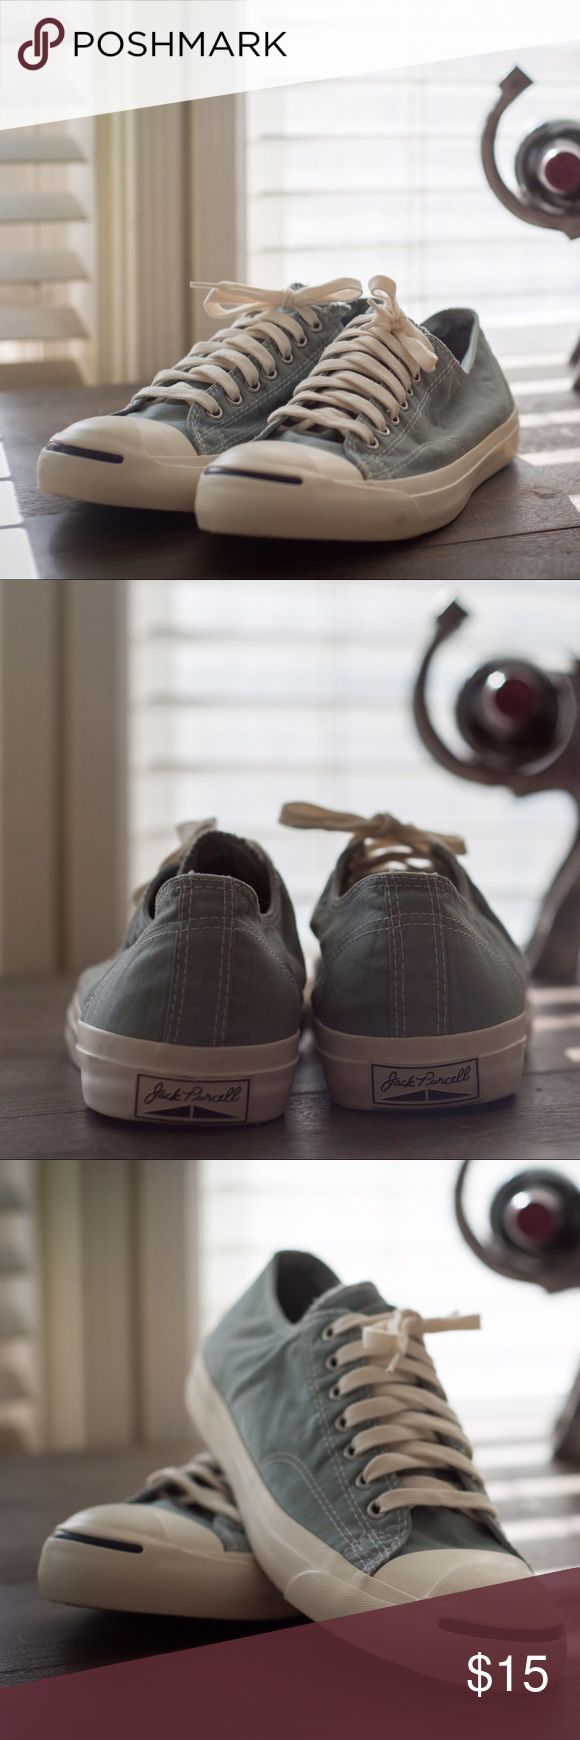 Converse Jack Purcell Low Top Baby Blue sz 10 Men Size 10-10.5 Men (they don't say on the shoe) Very clean, worn just a handful of times. Converse Shoes Sneakers